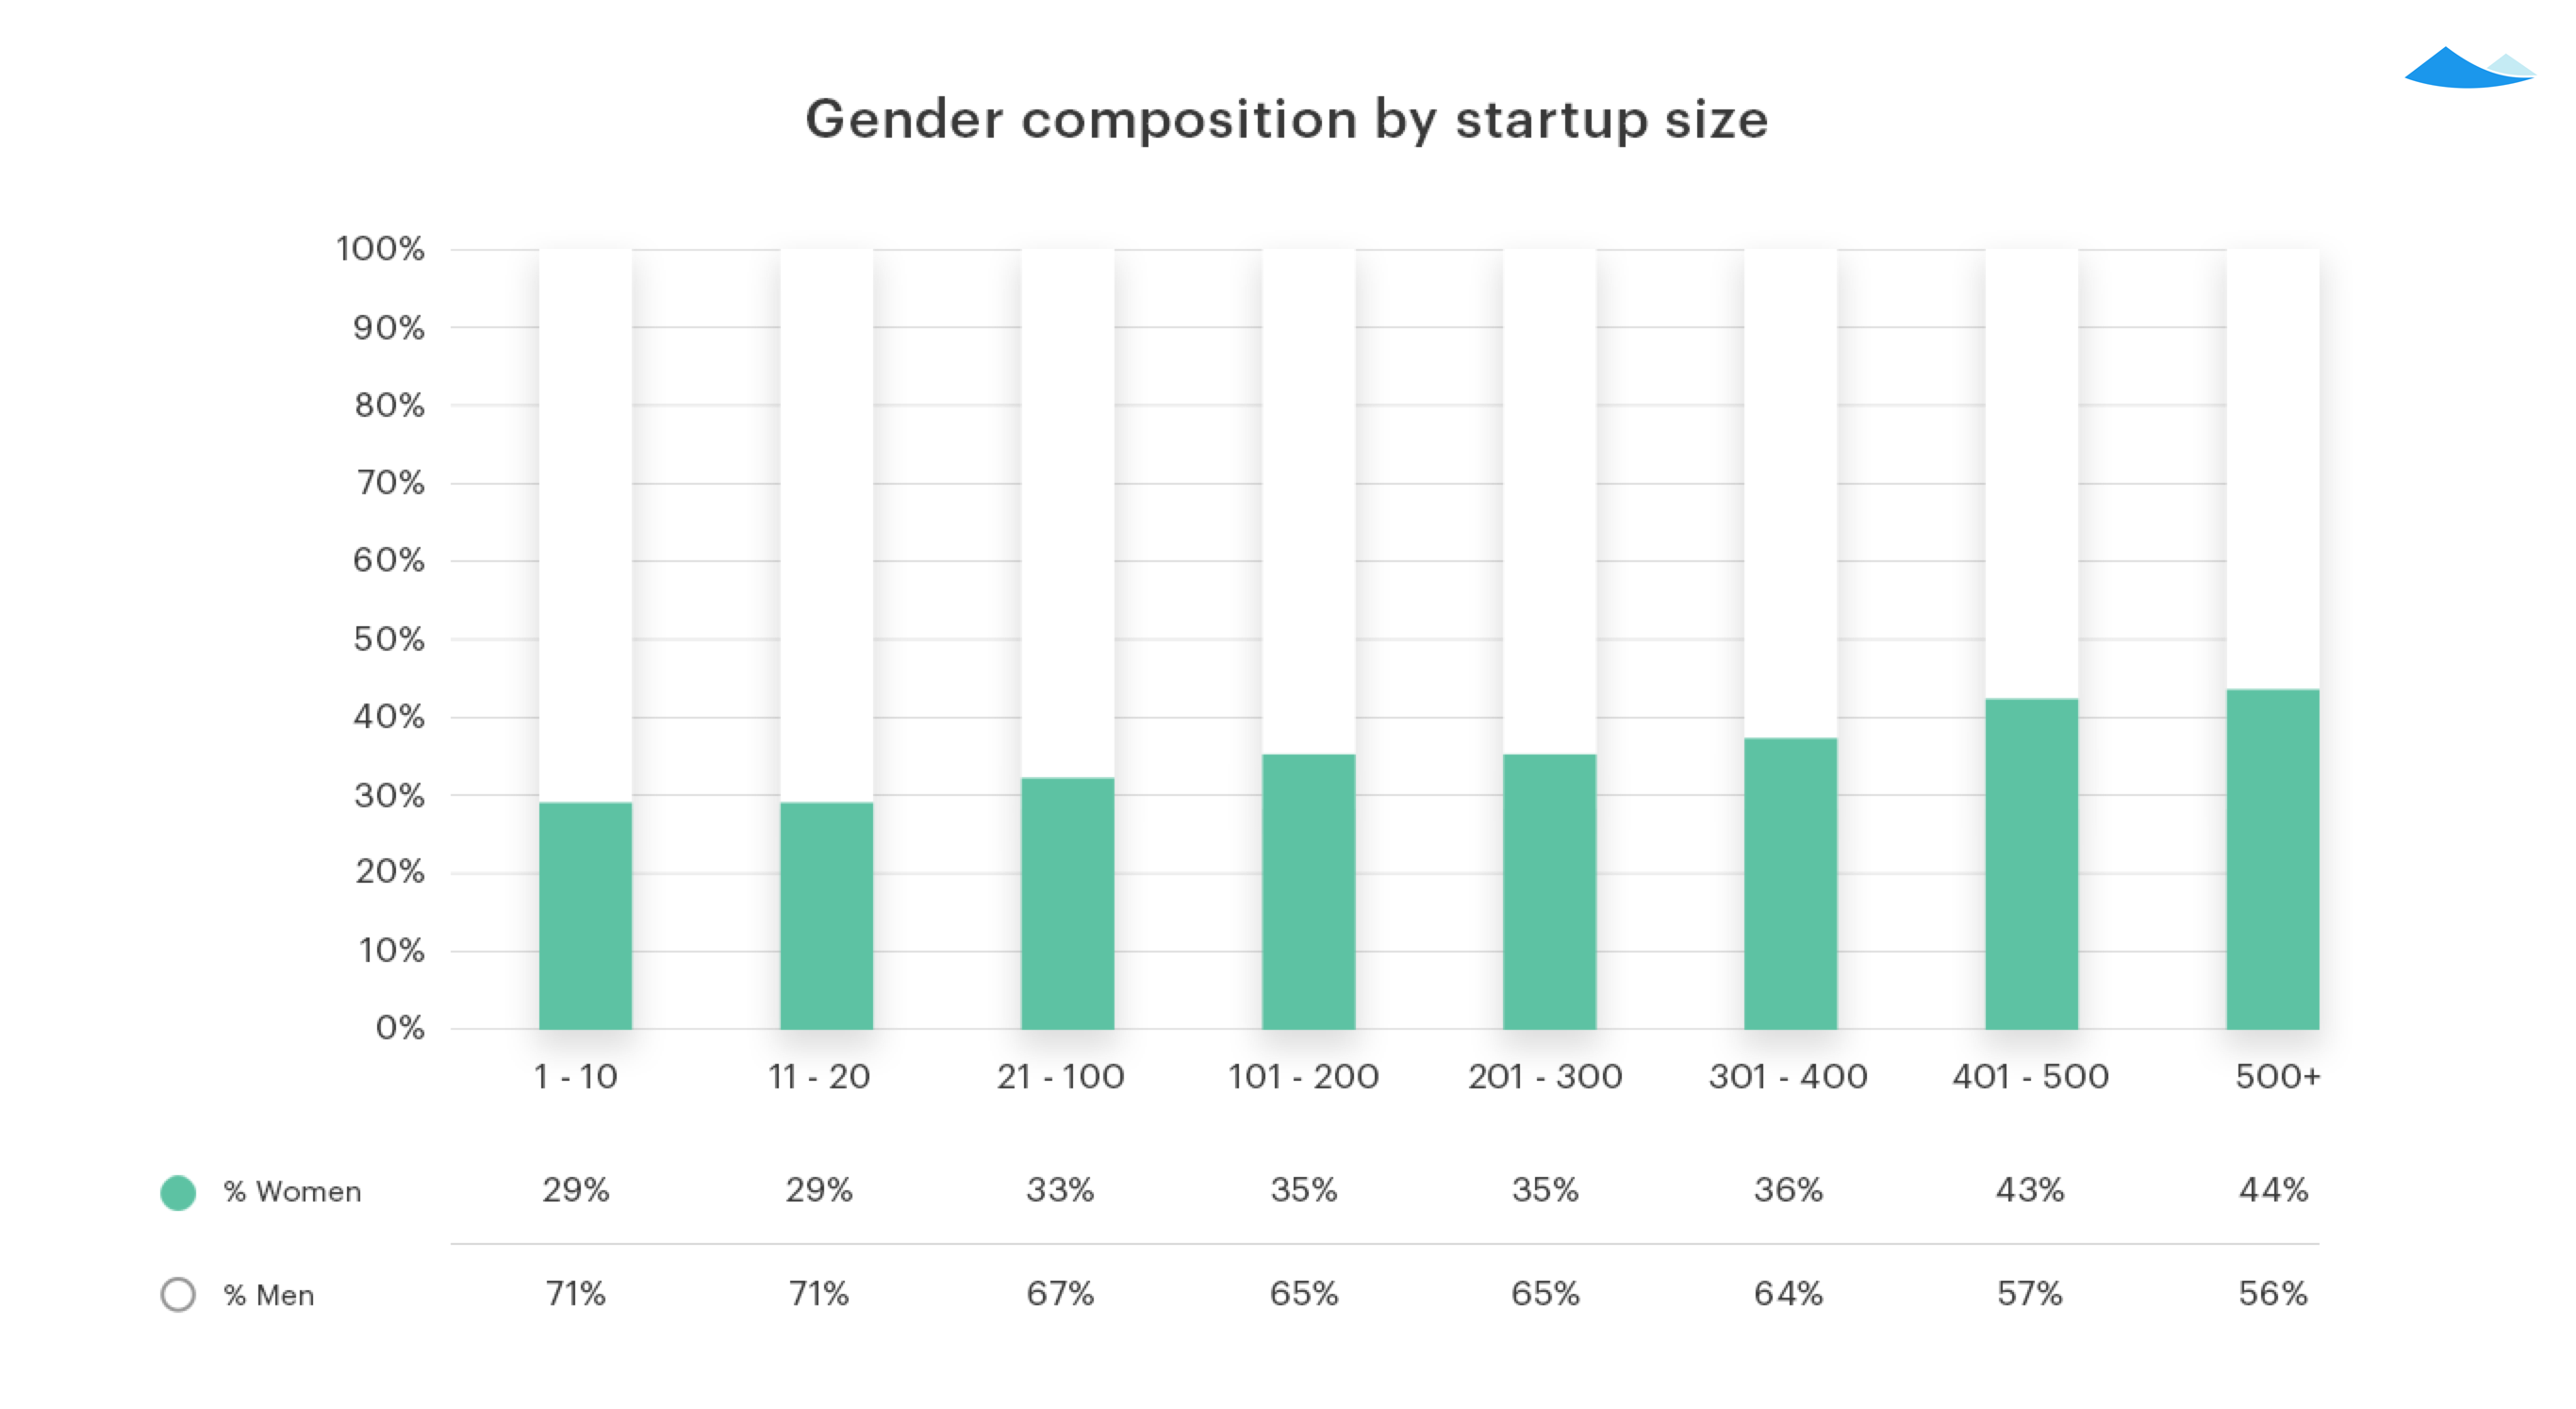 Analyzing the gender equity gap 2